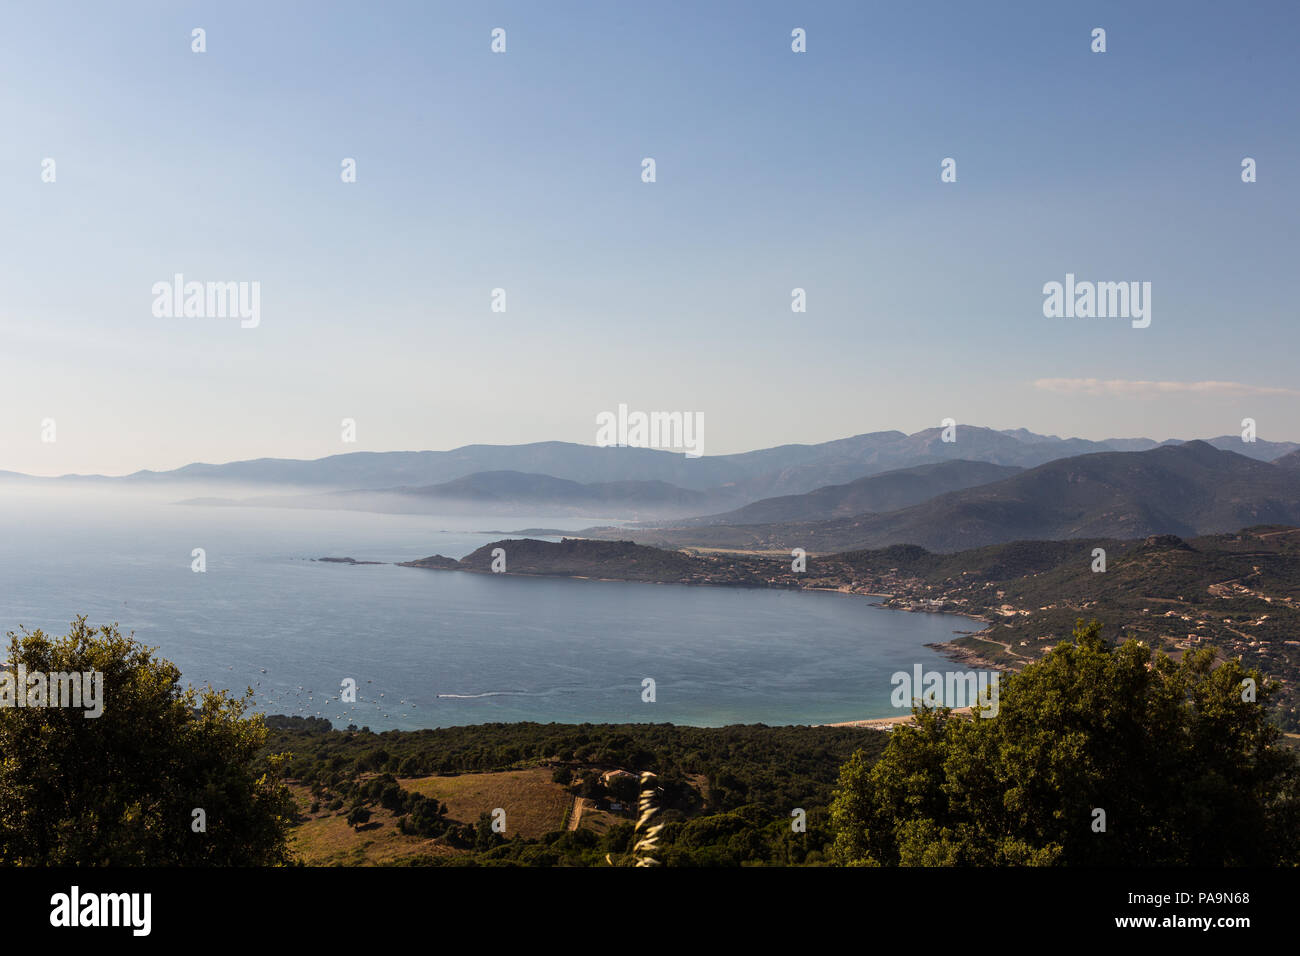 Stunning view of the Corsica coast near Ajaccio in the late afternoon in France - Stock Image